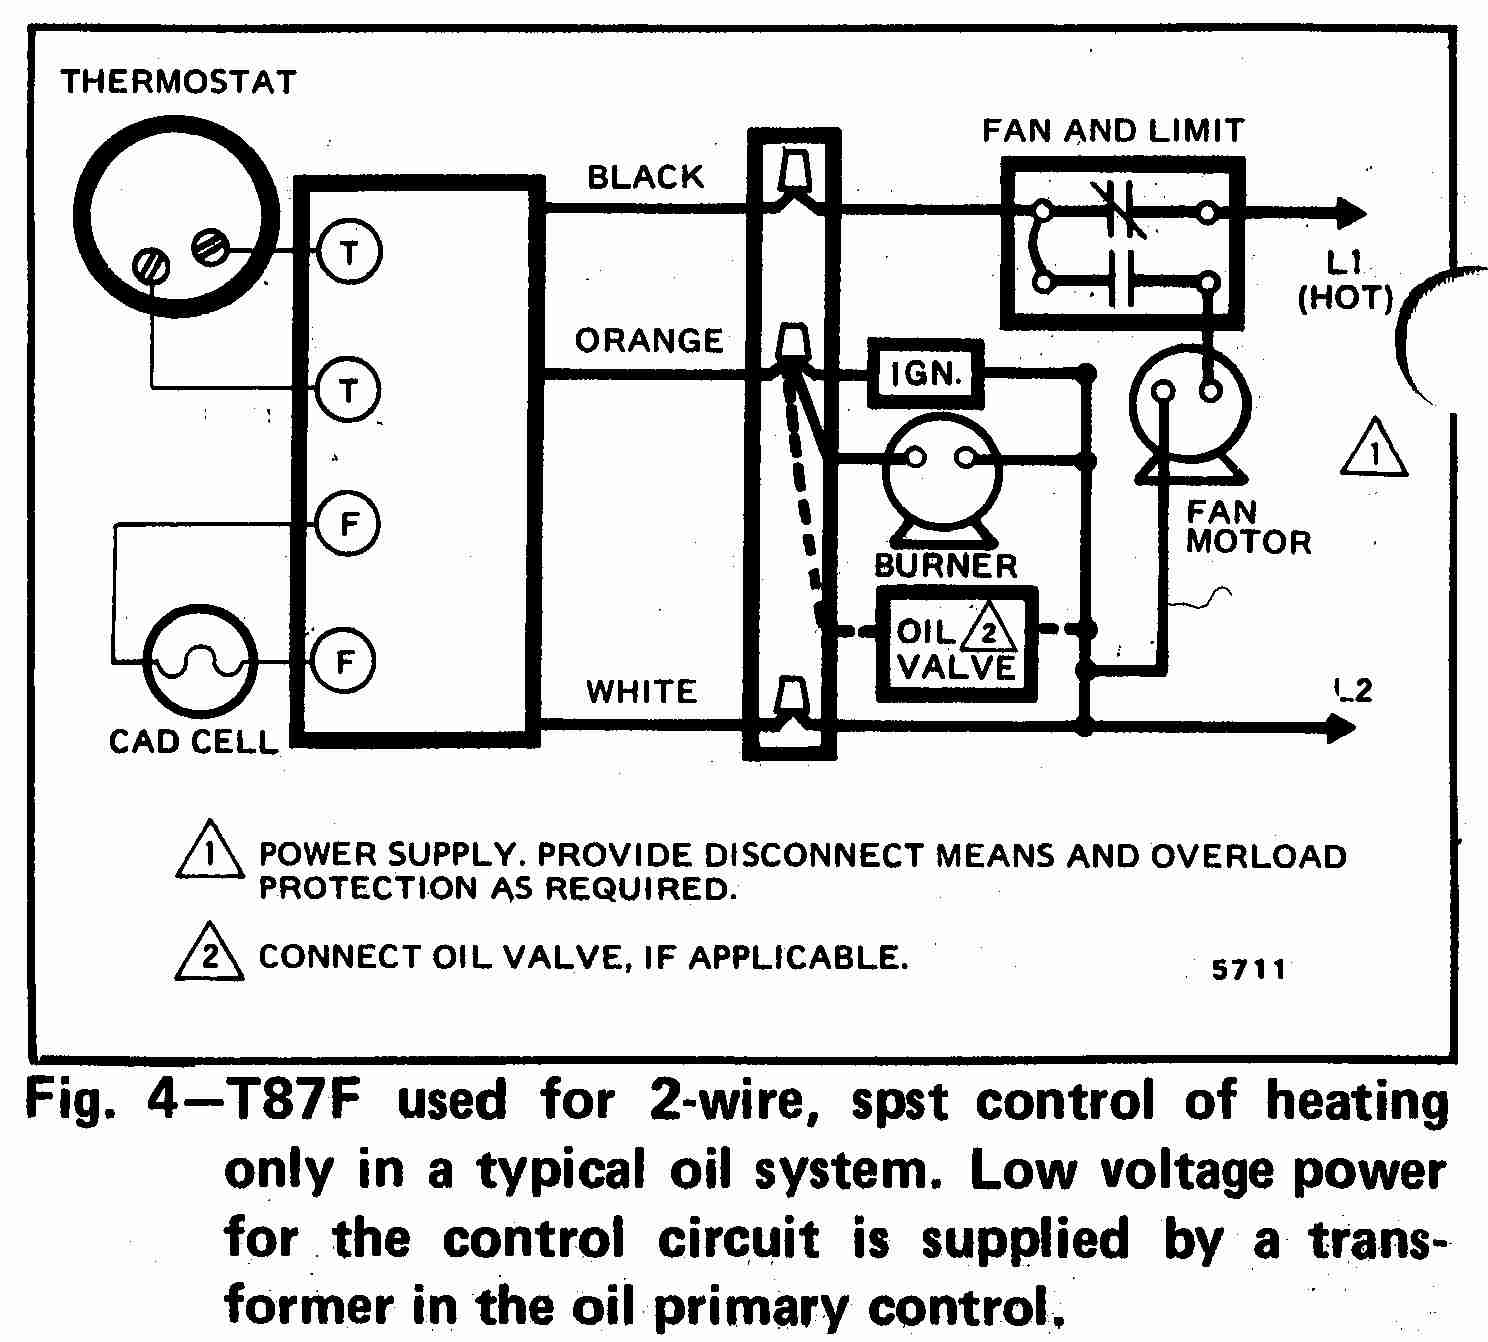 TT_T87F_0002_2W_DJF room thermostat wiring diagrams for hvac systems Basic Outlet Wiring Diagrams at creativeand.co